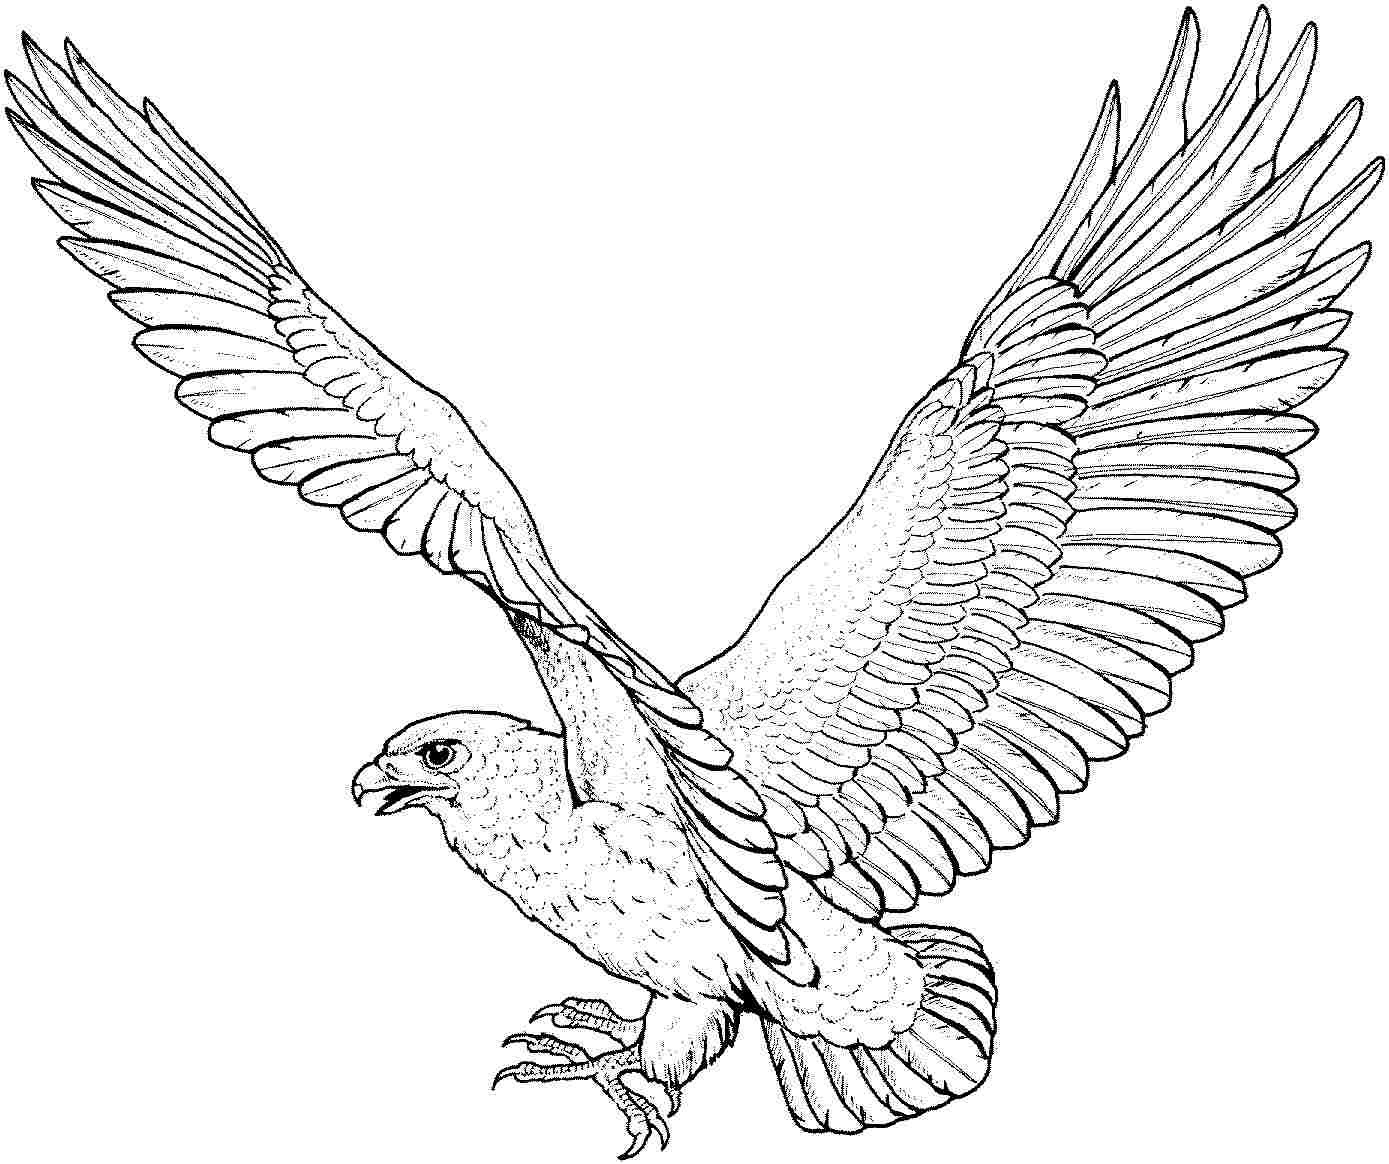 eagle coloring images printable eagle coloring pages eagle images coloring